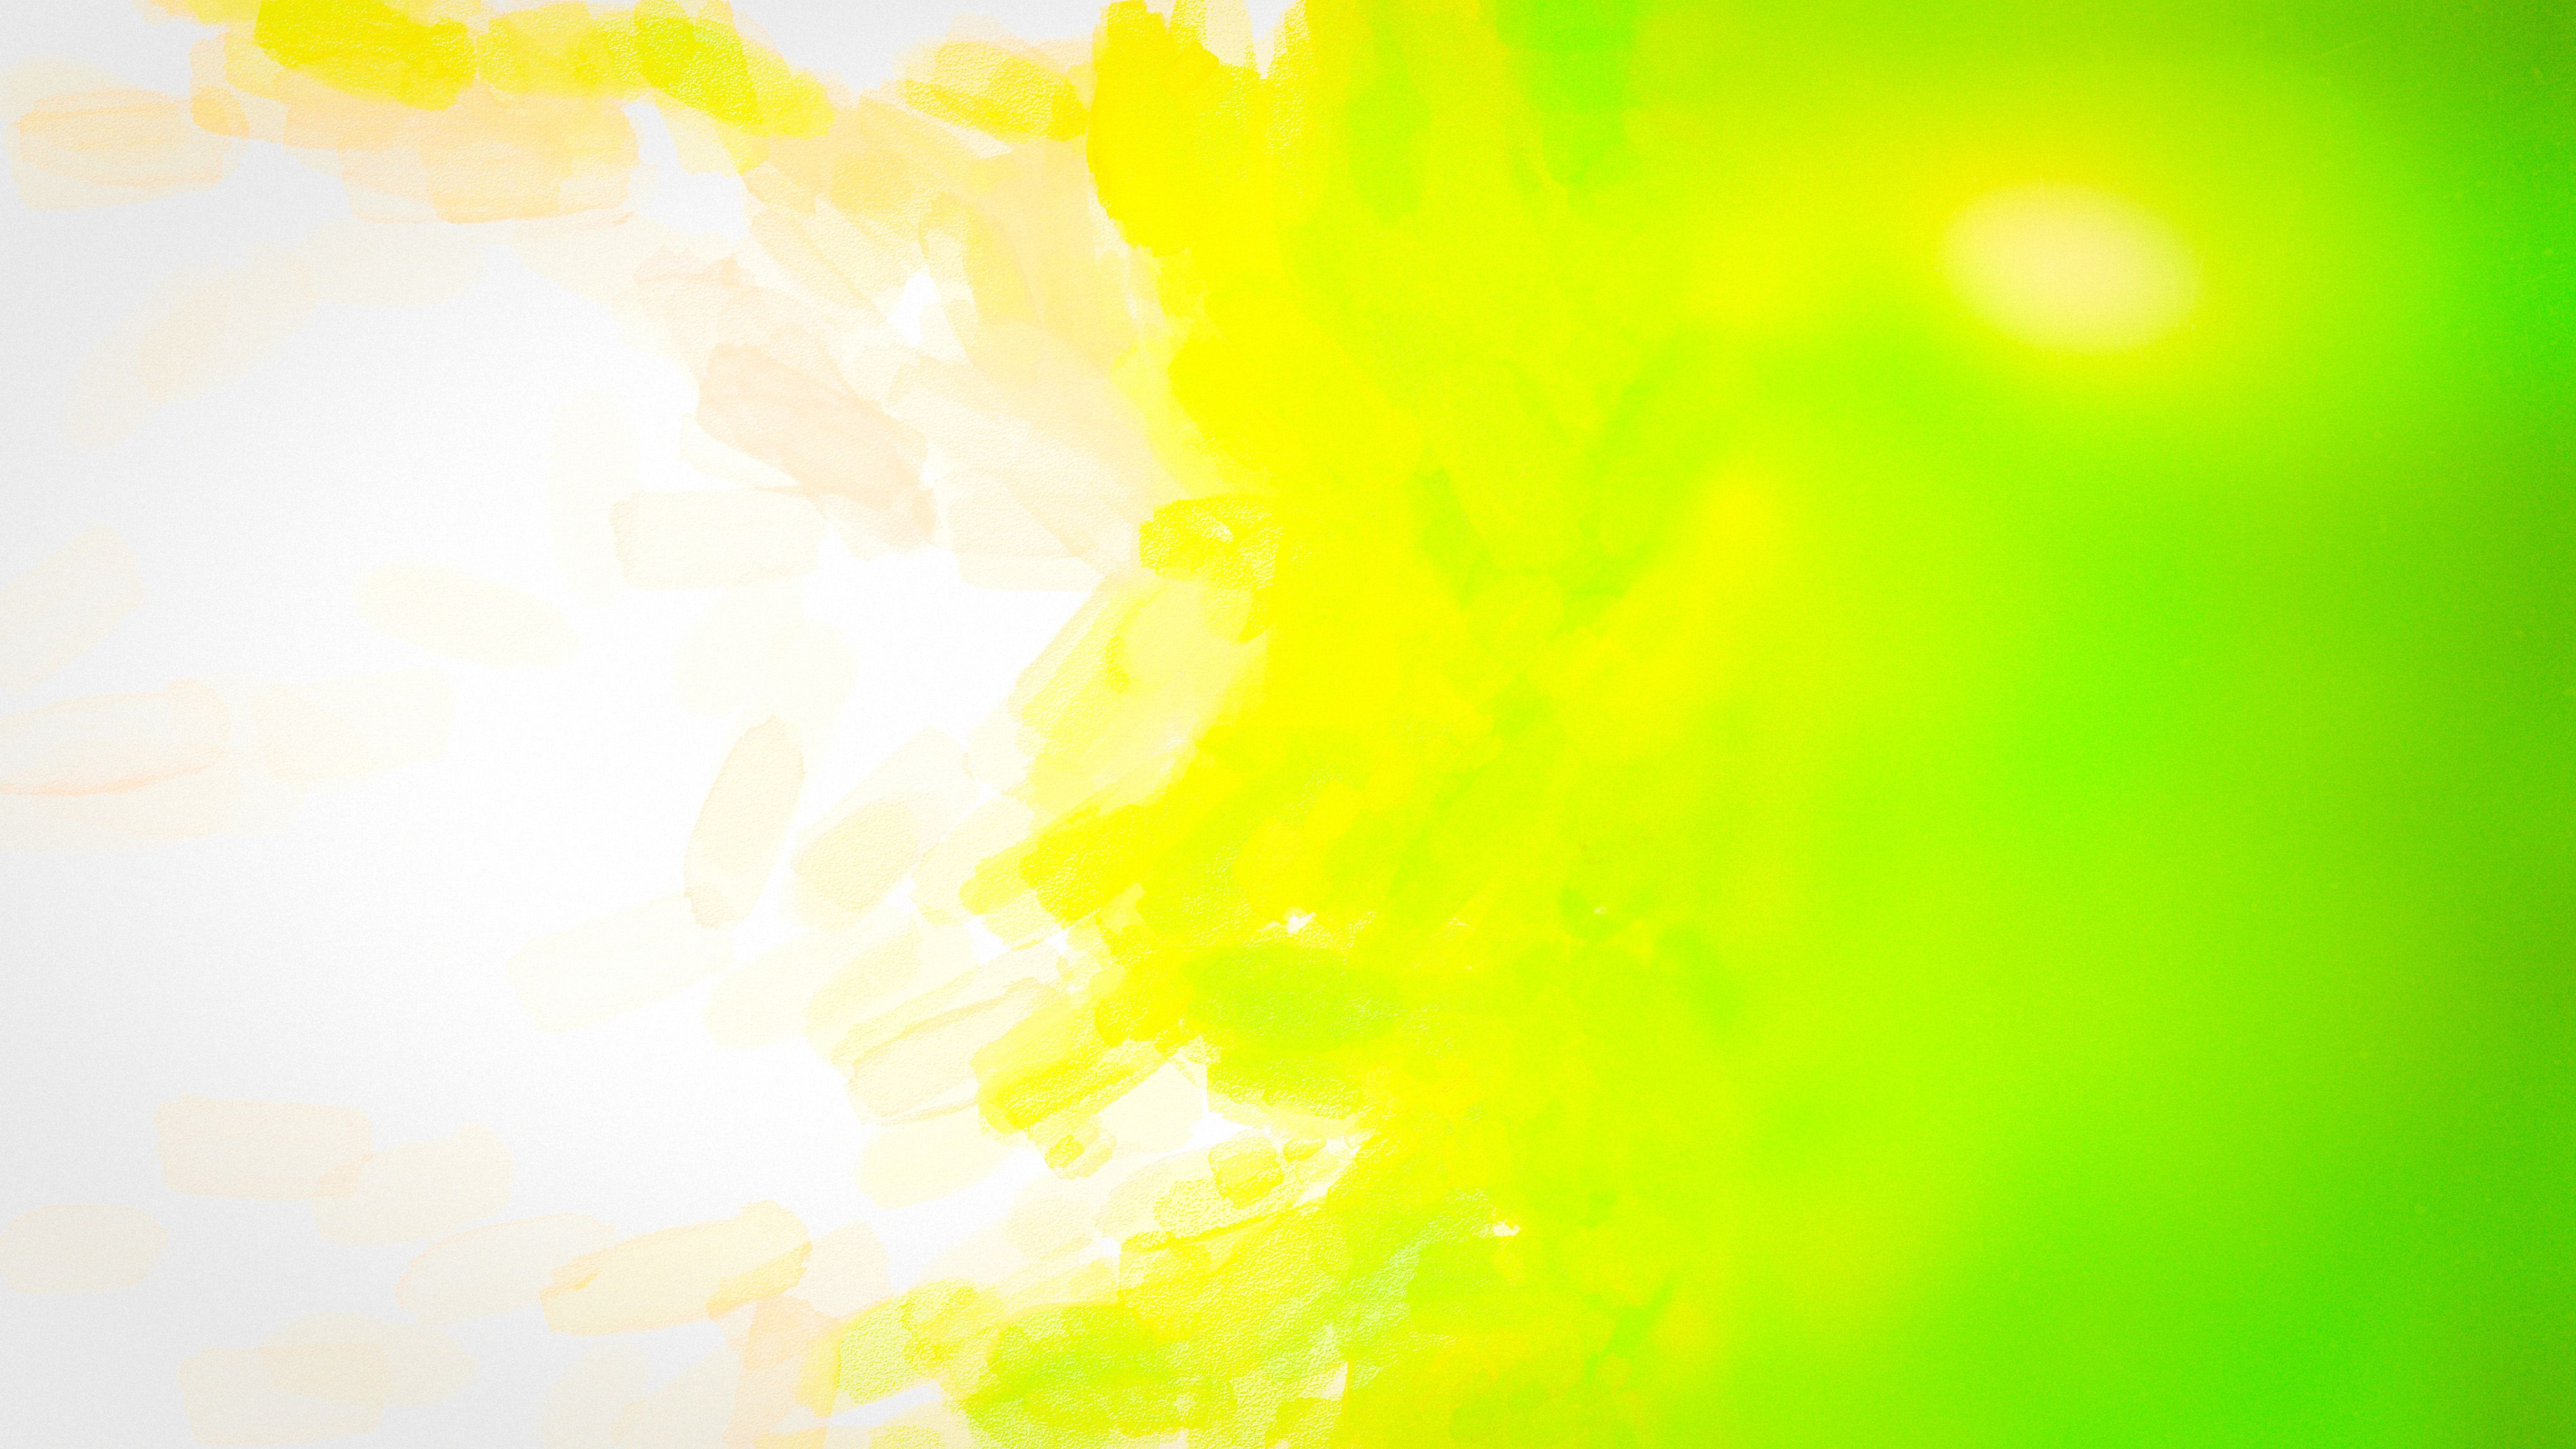 Green Yellow Orange Free Background Image Design Graphicdesign Creative Wallpaper Ba Free Background Images Background Images Light Background Images